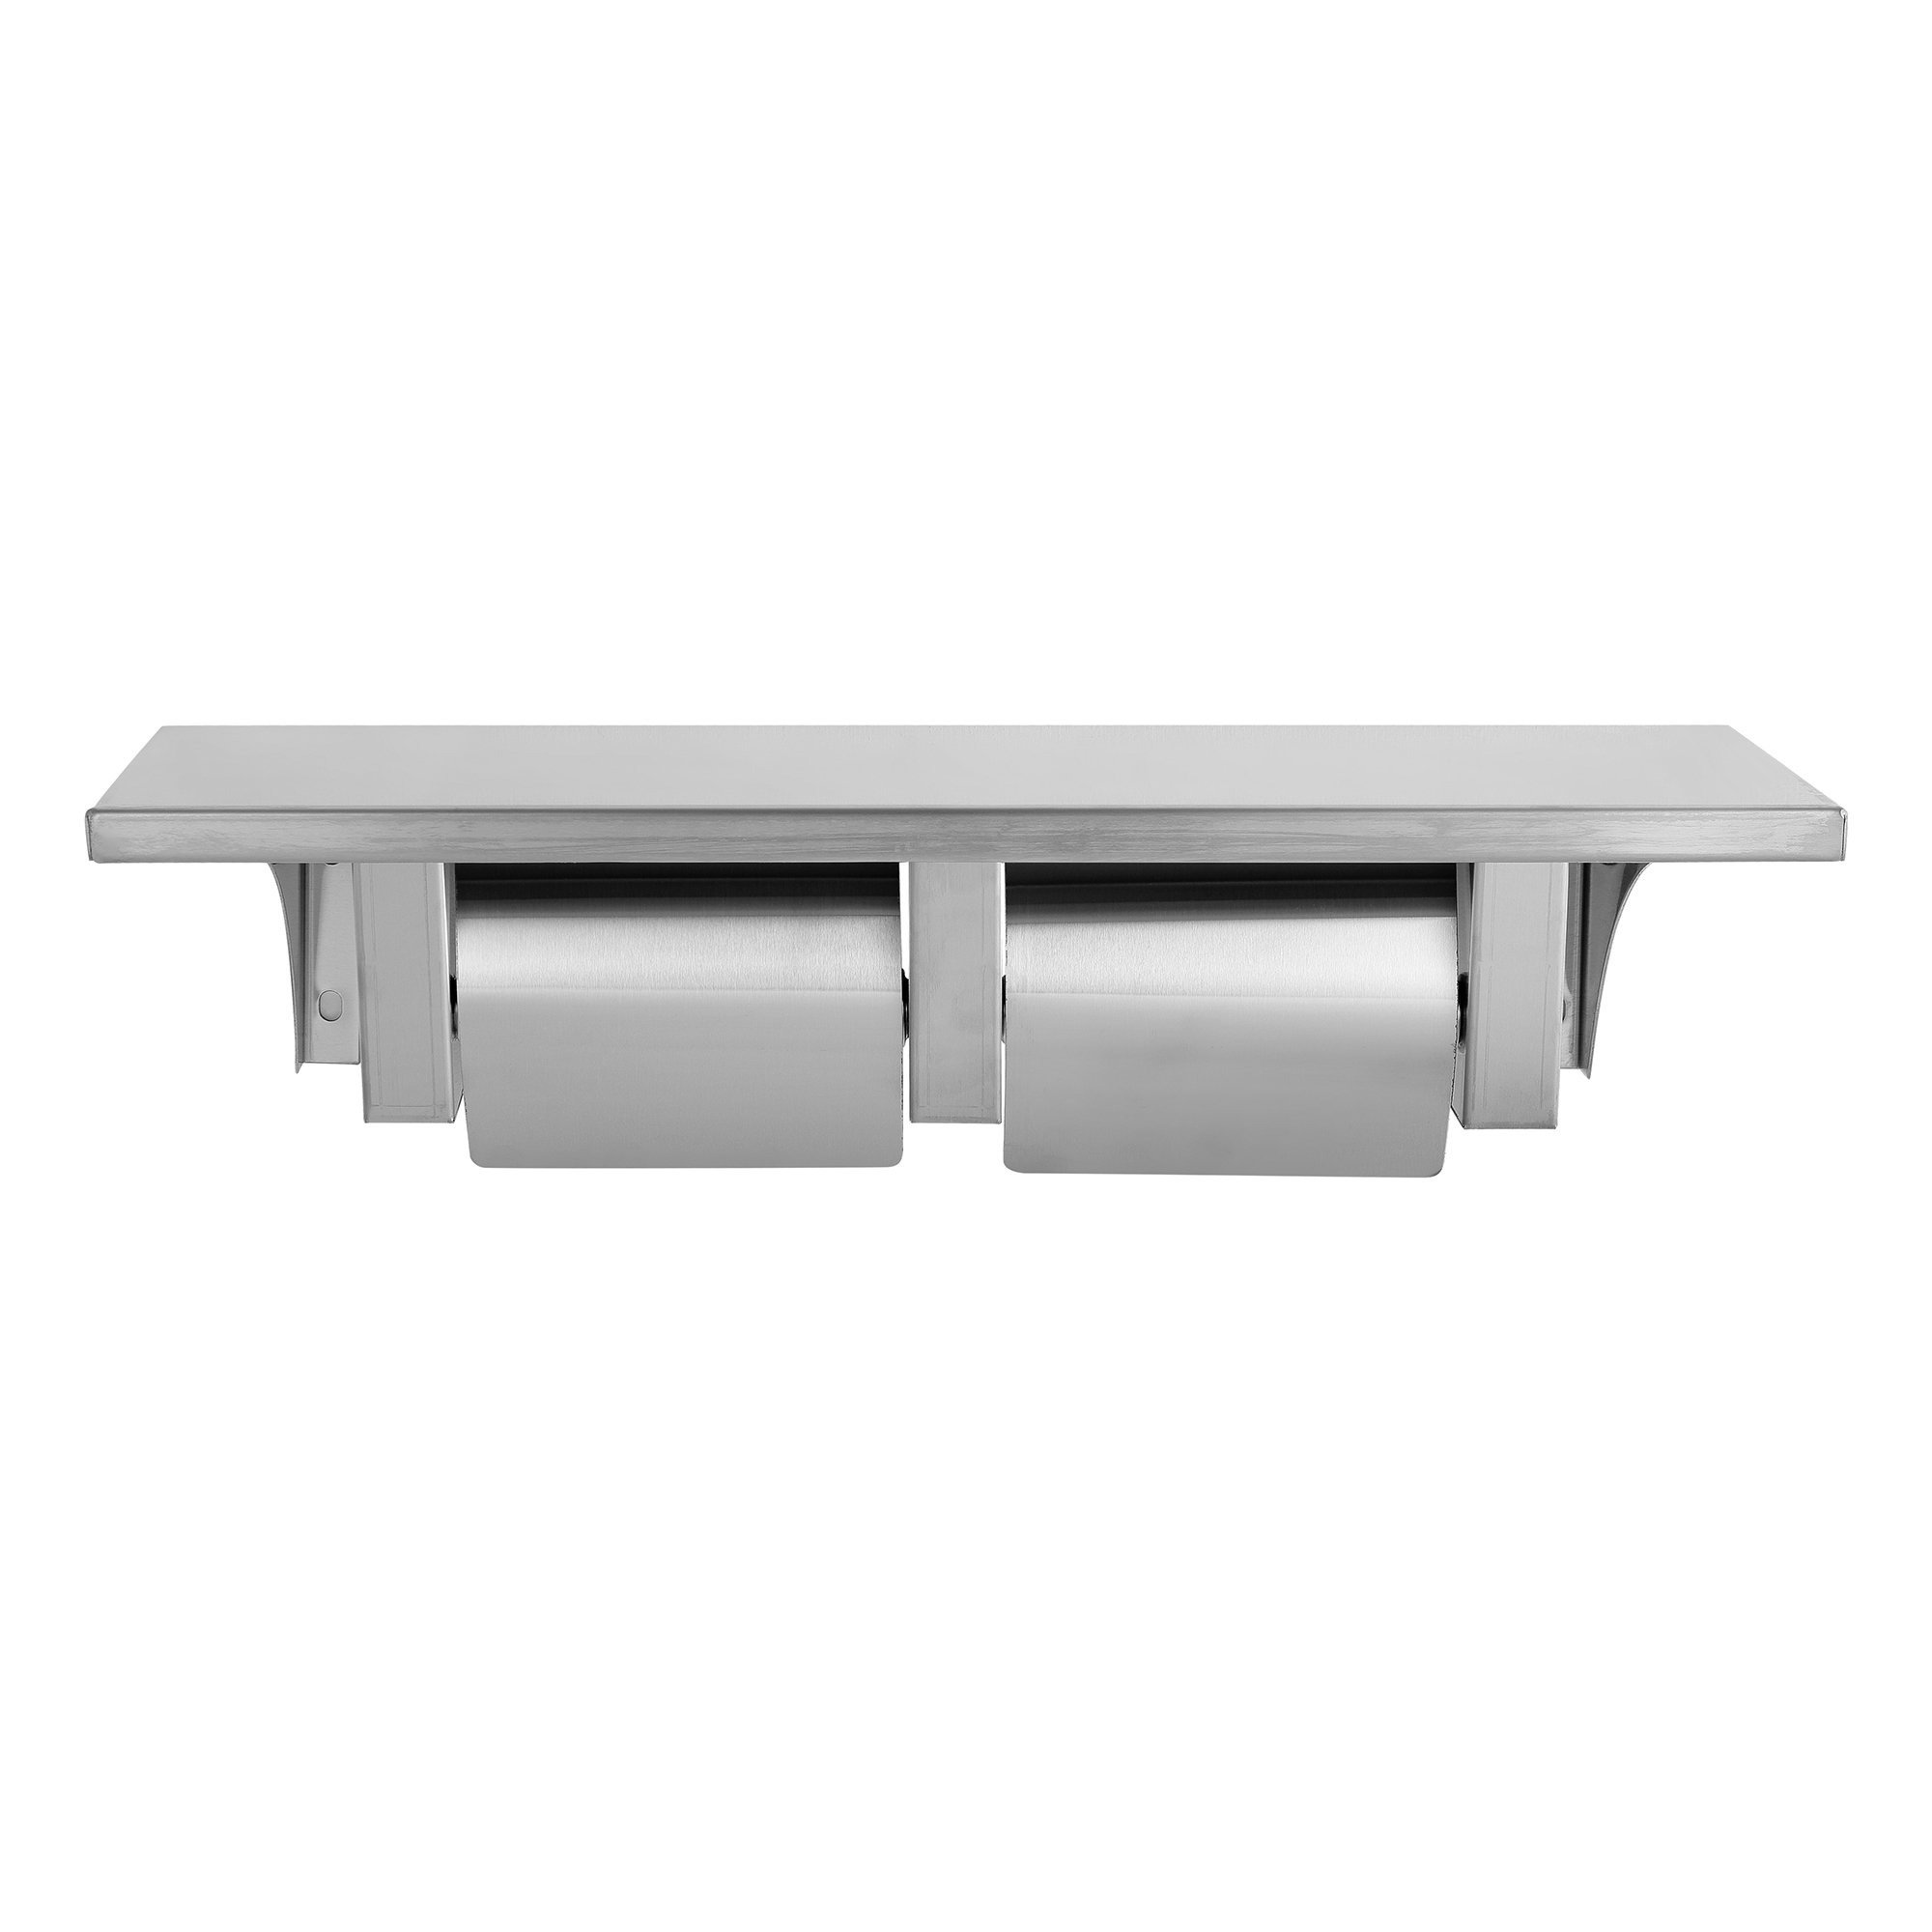 CA811 Stainless Steel Shelf and Double paper holder with cover(Satin finish)